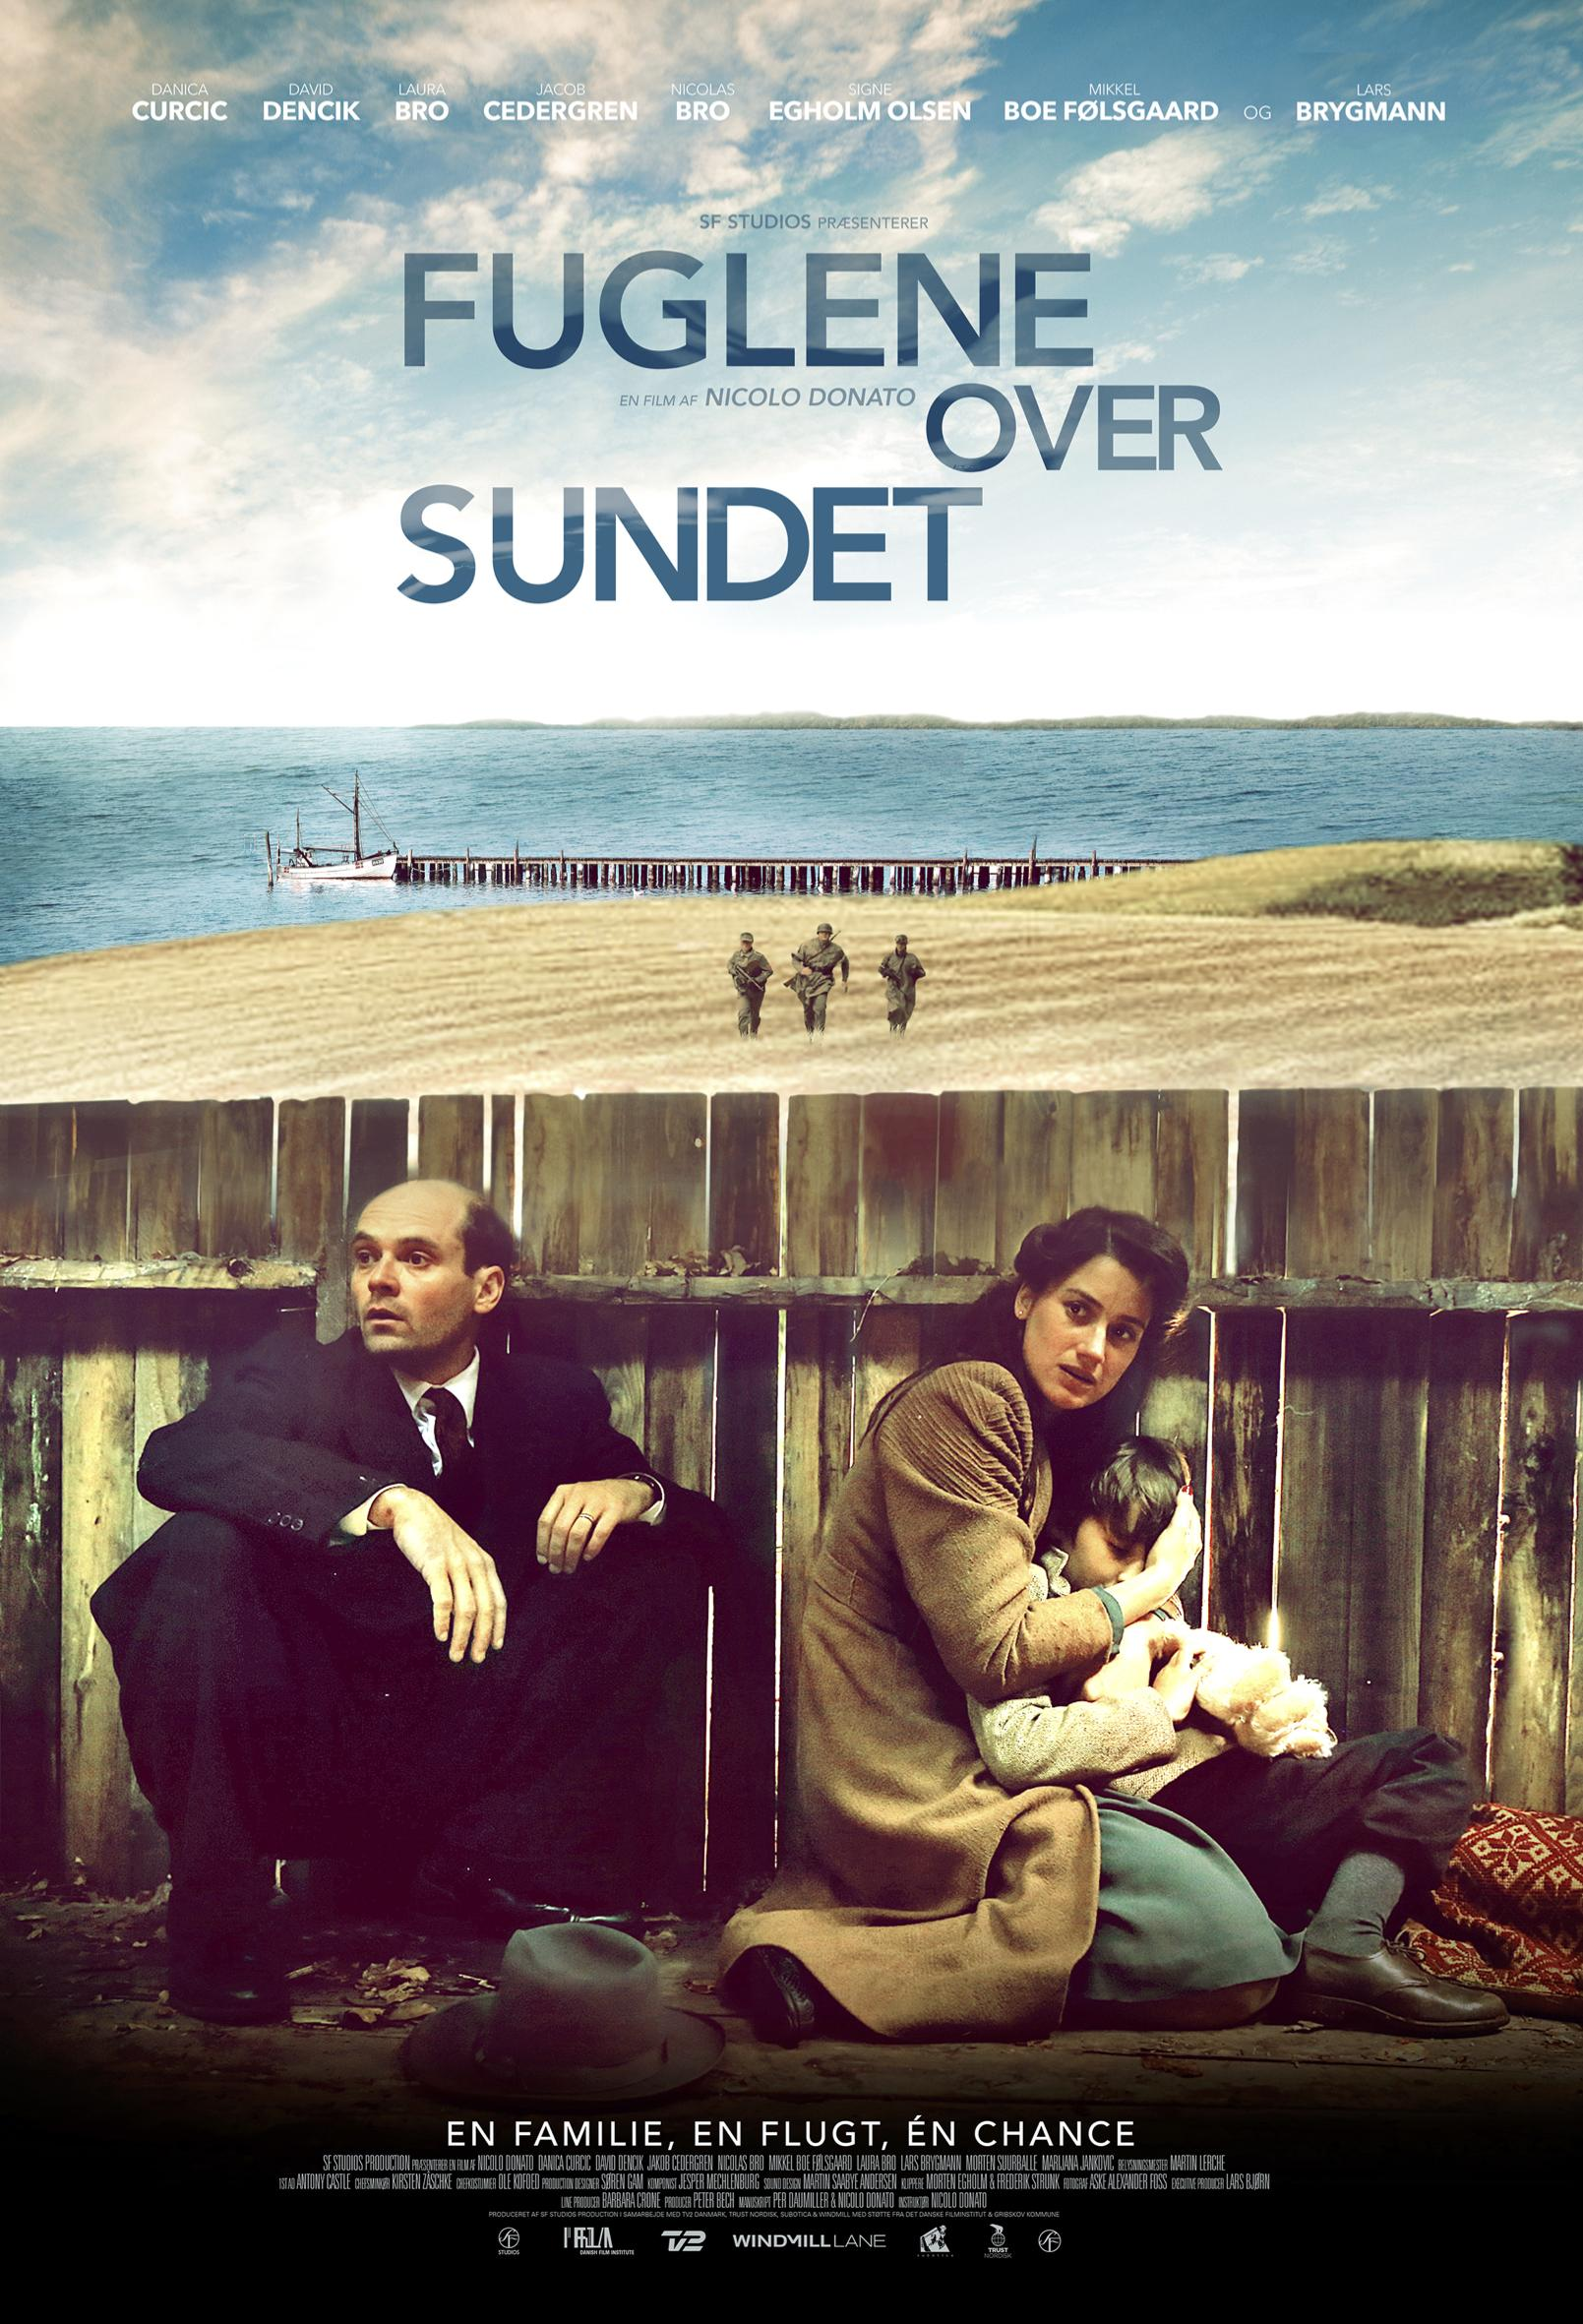 image Fuglene over sundet Watch Full Movie Free Online